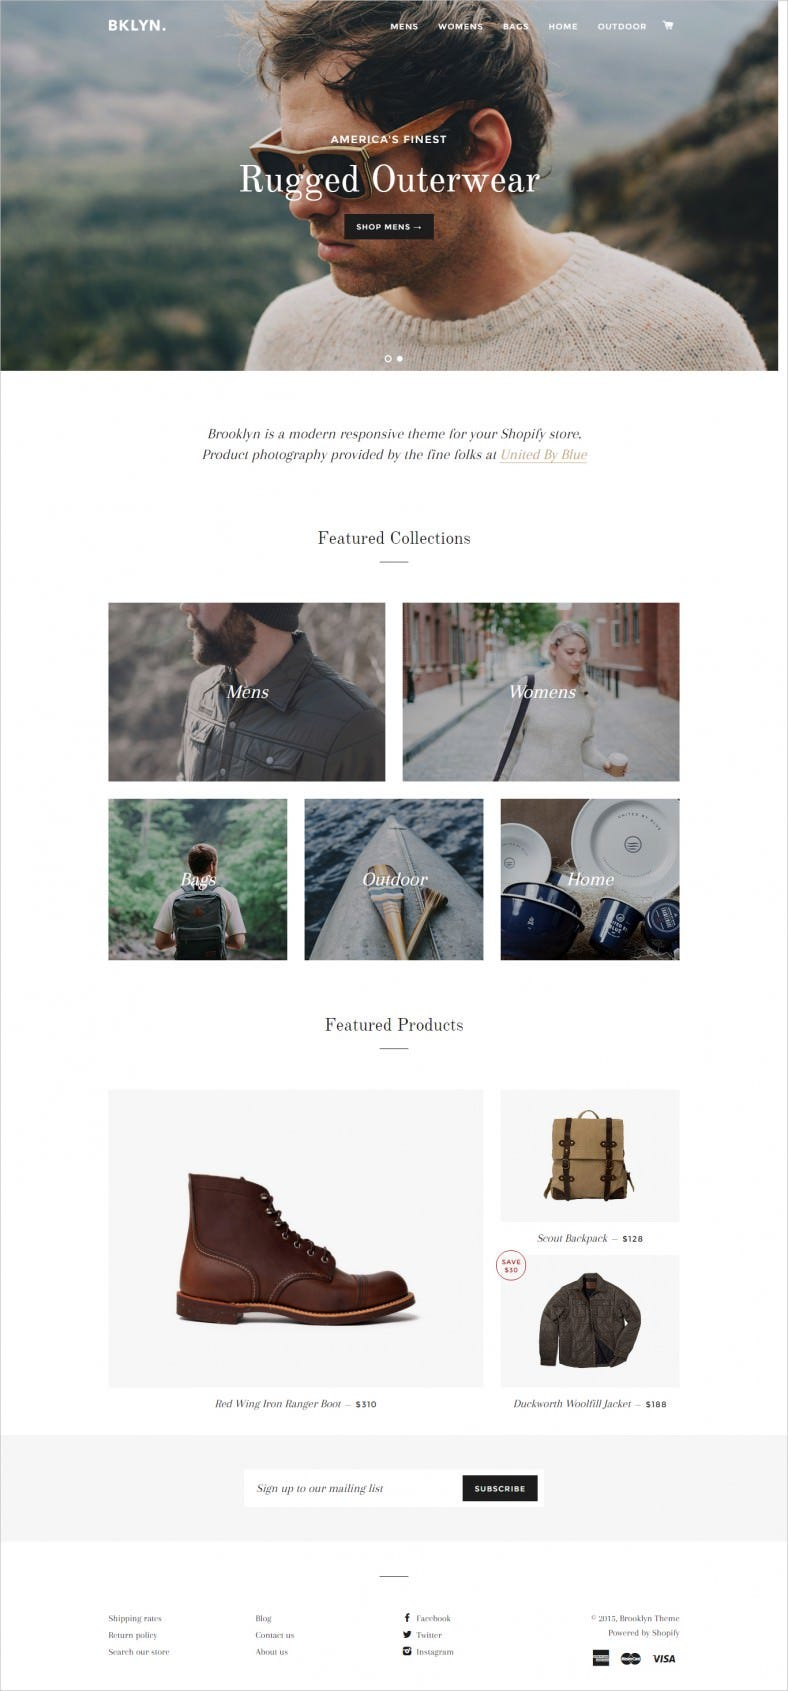 Free Ecommerce Website Template for Apparel Store